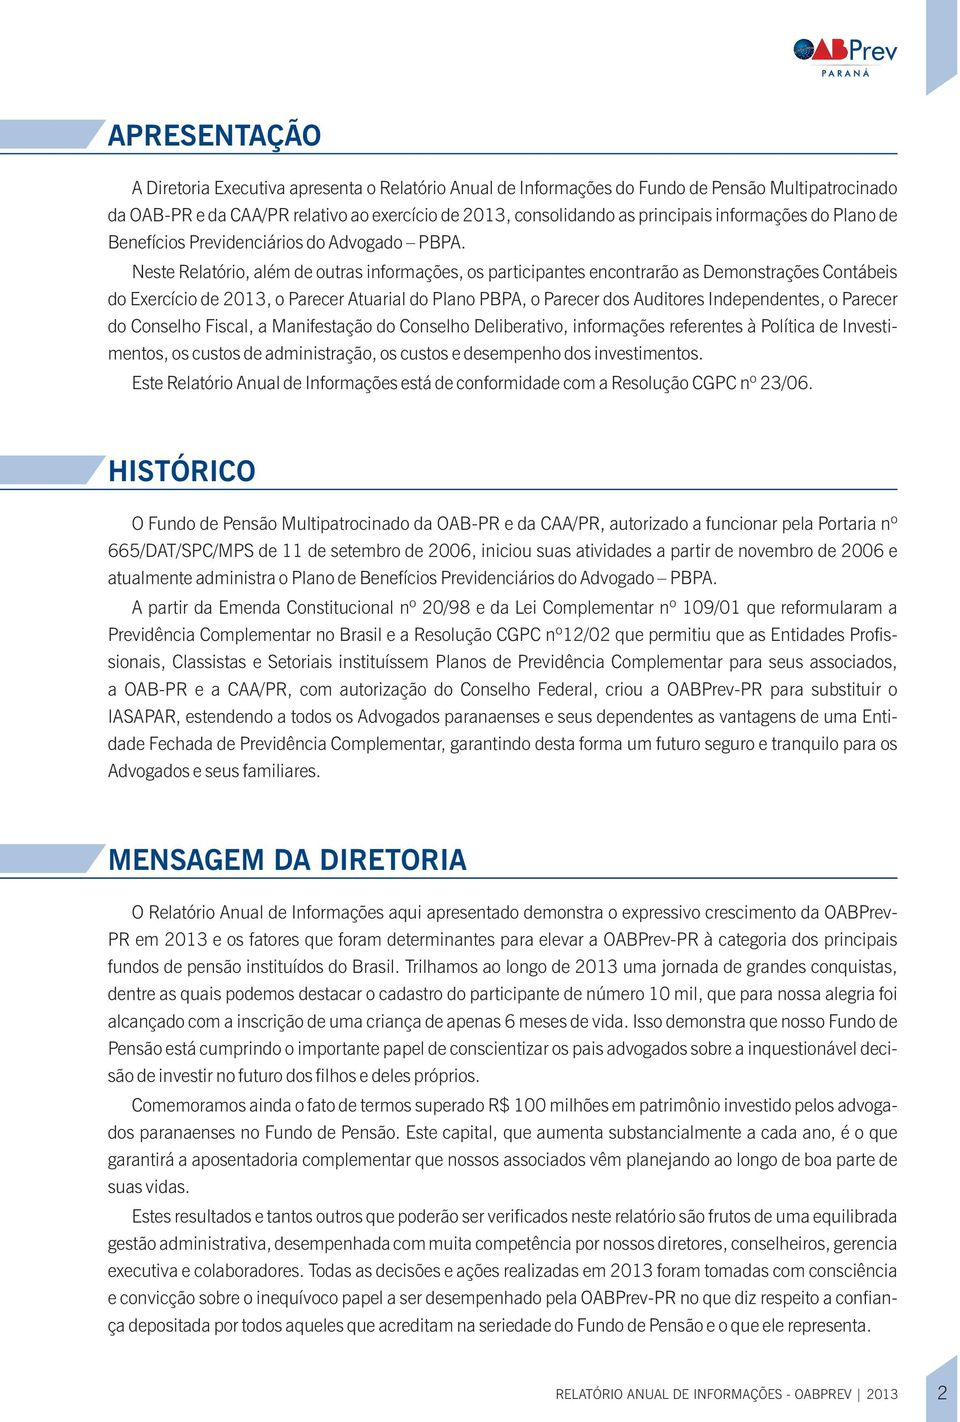 Neste Reltório, lém de outrs informções, os prticipntes encontrrão s Demonstrções Contábeis do Exercício de 2013, o Precer Aturil do Plno PBPA, o Precer dos Auditores Independentes, o Precer do